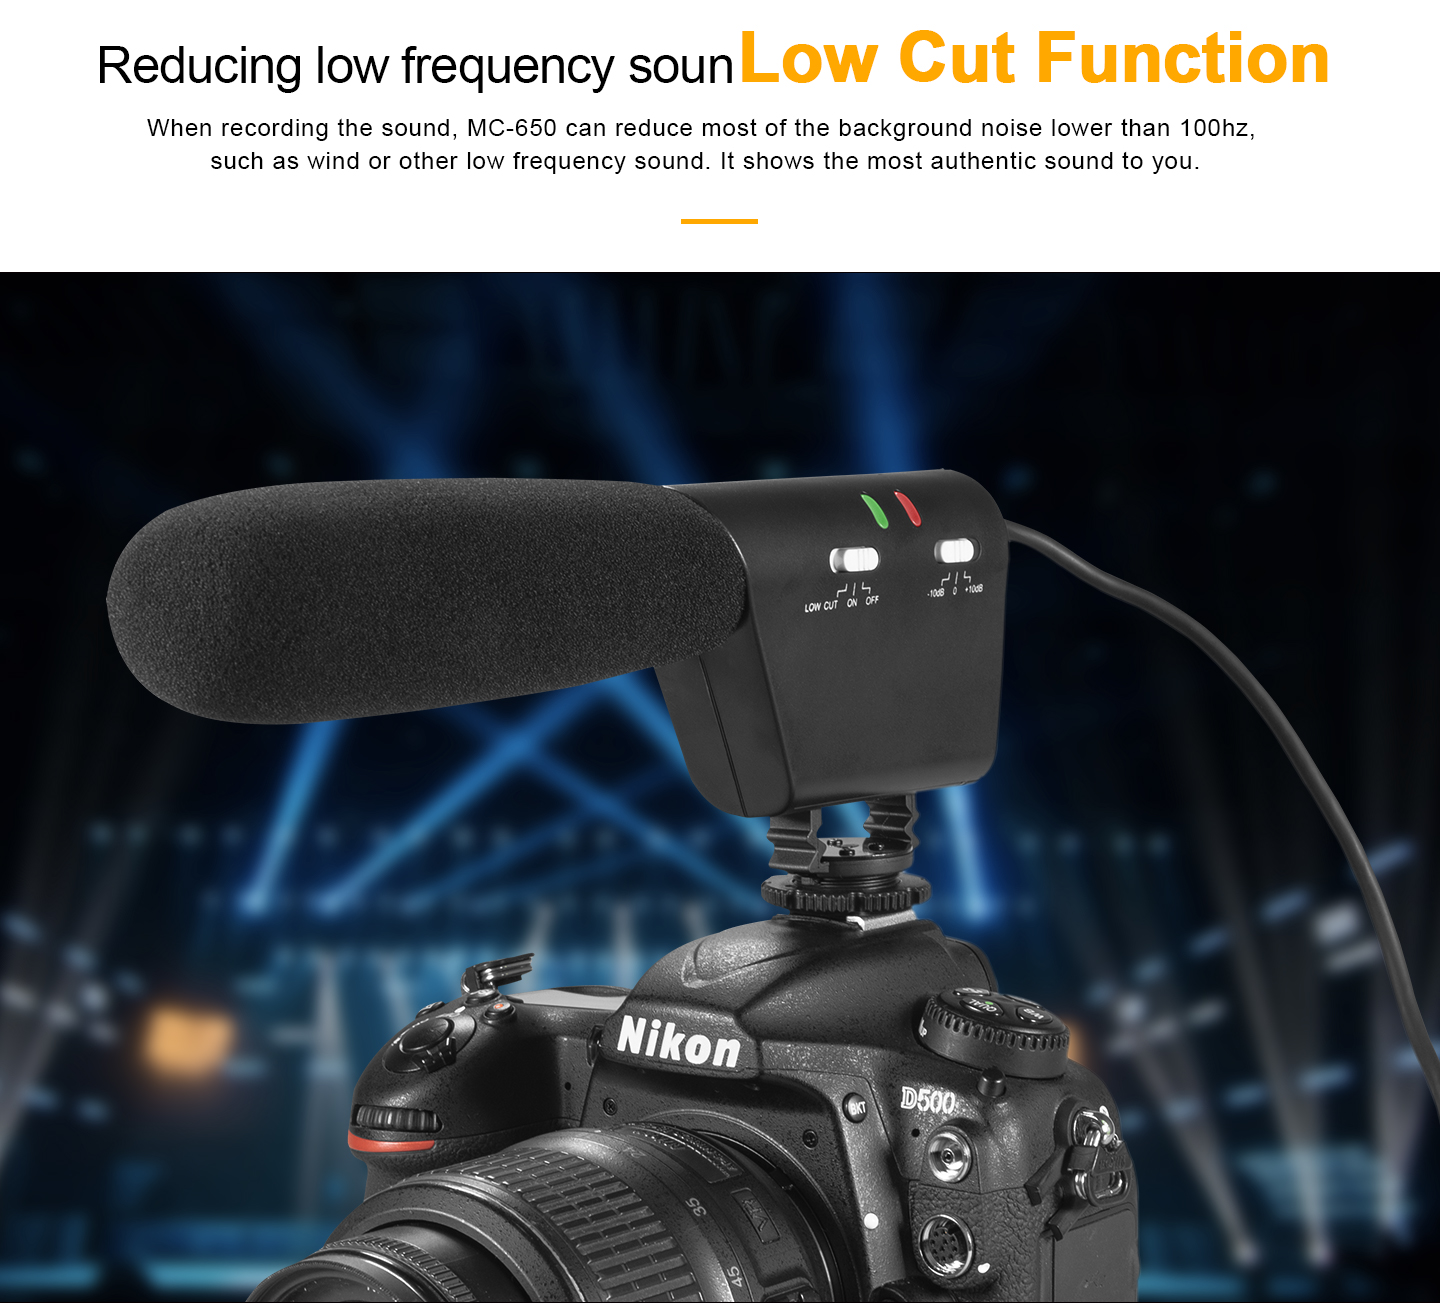 Reducing low frequency sound